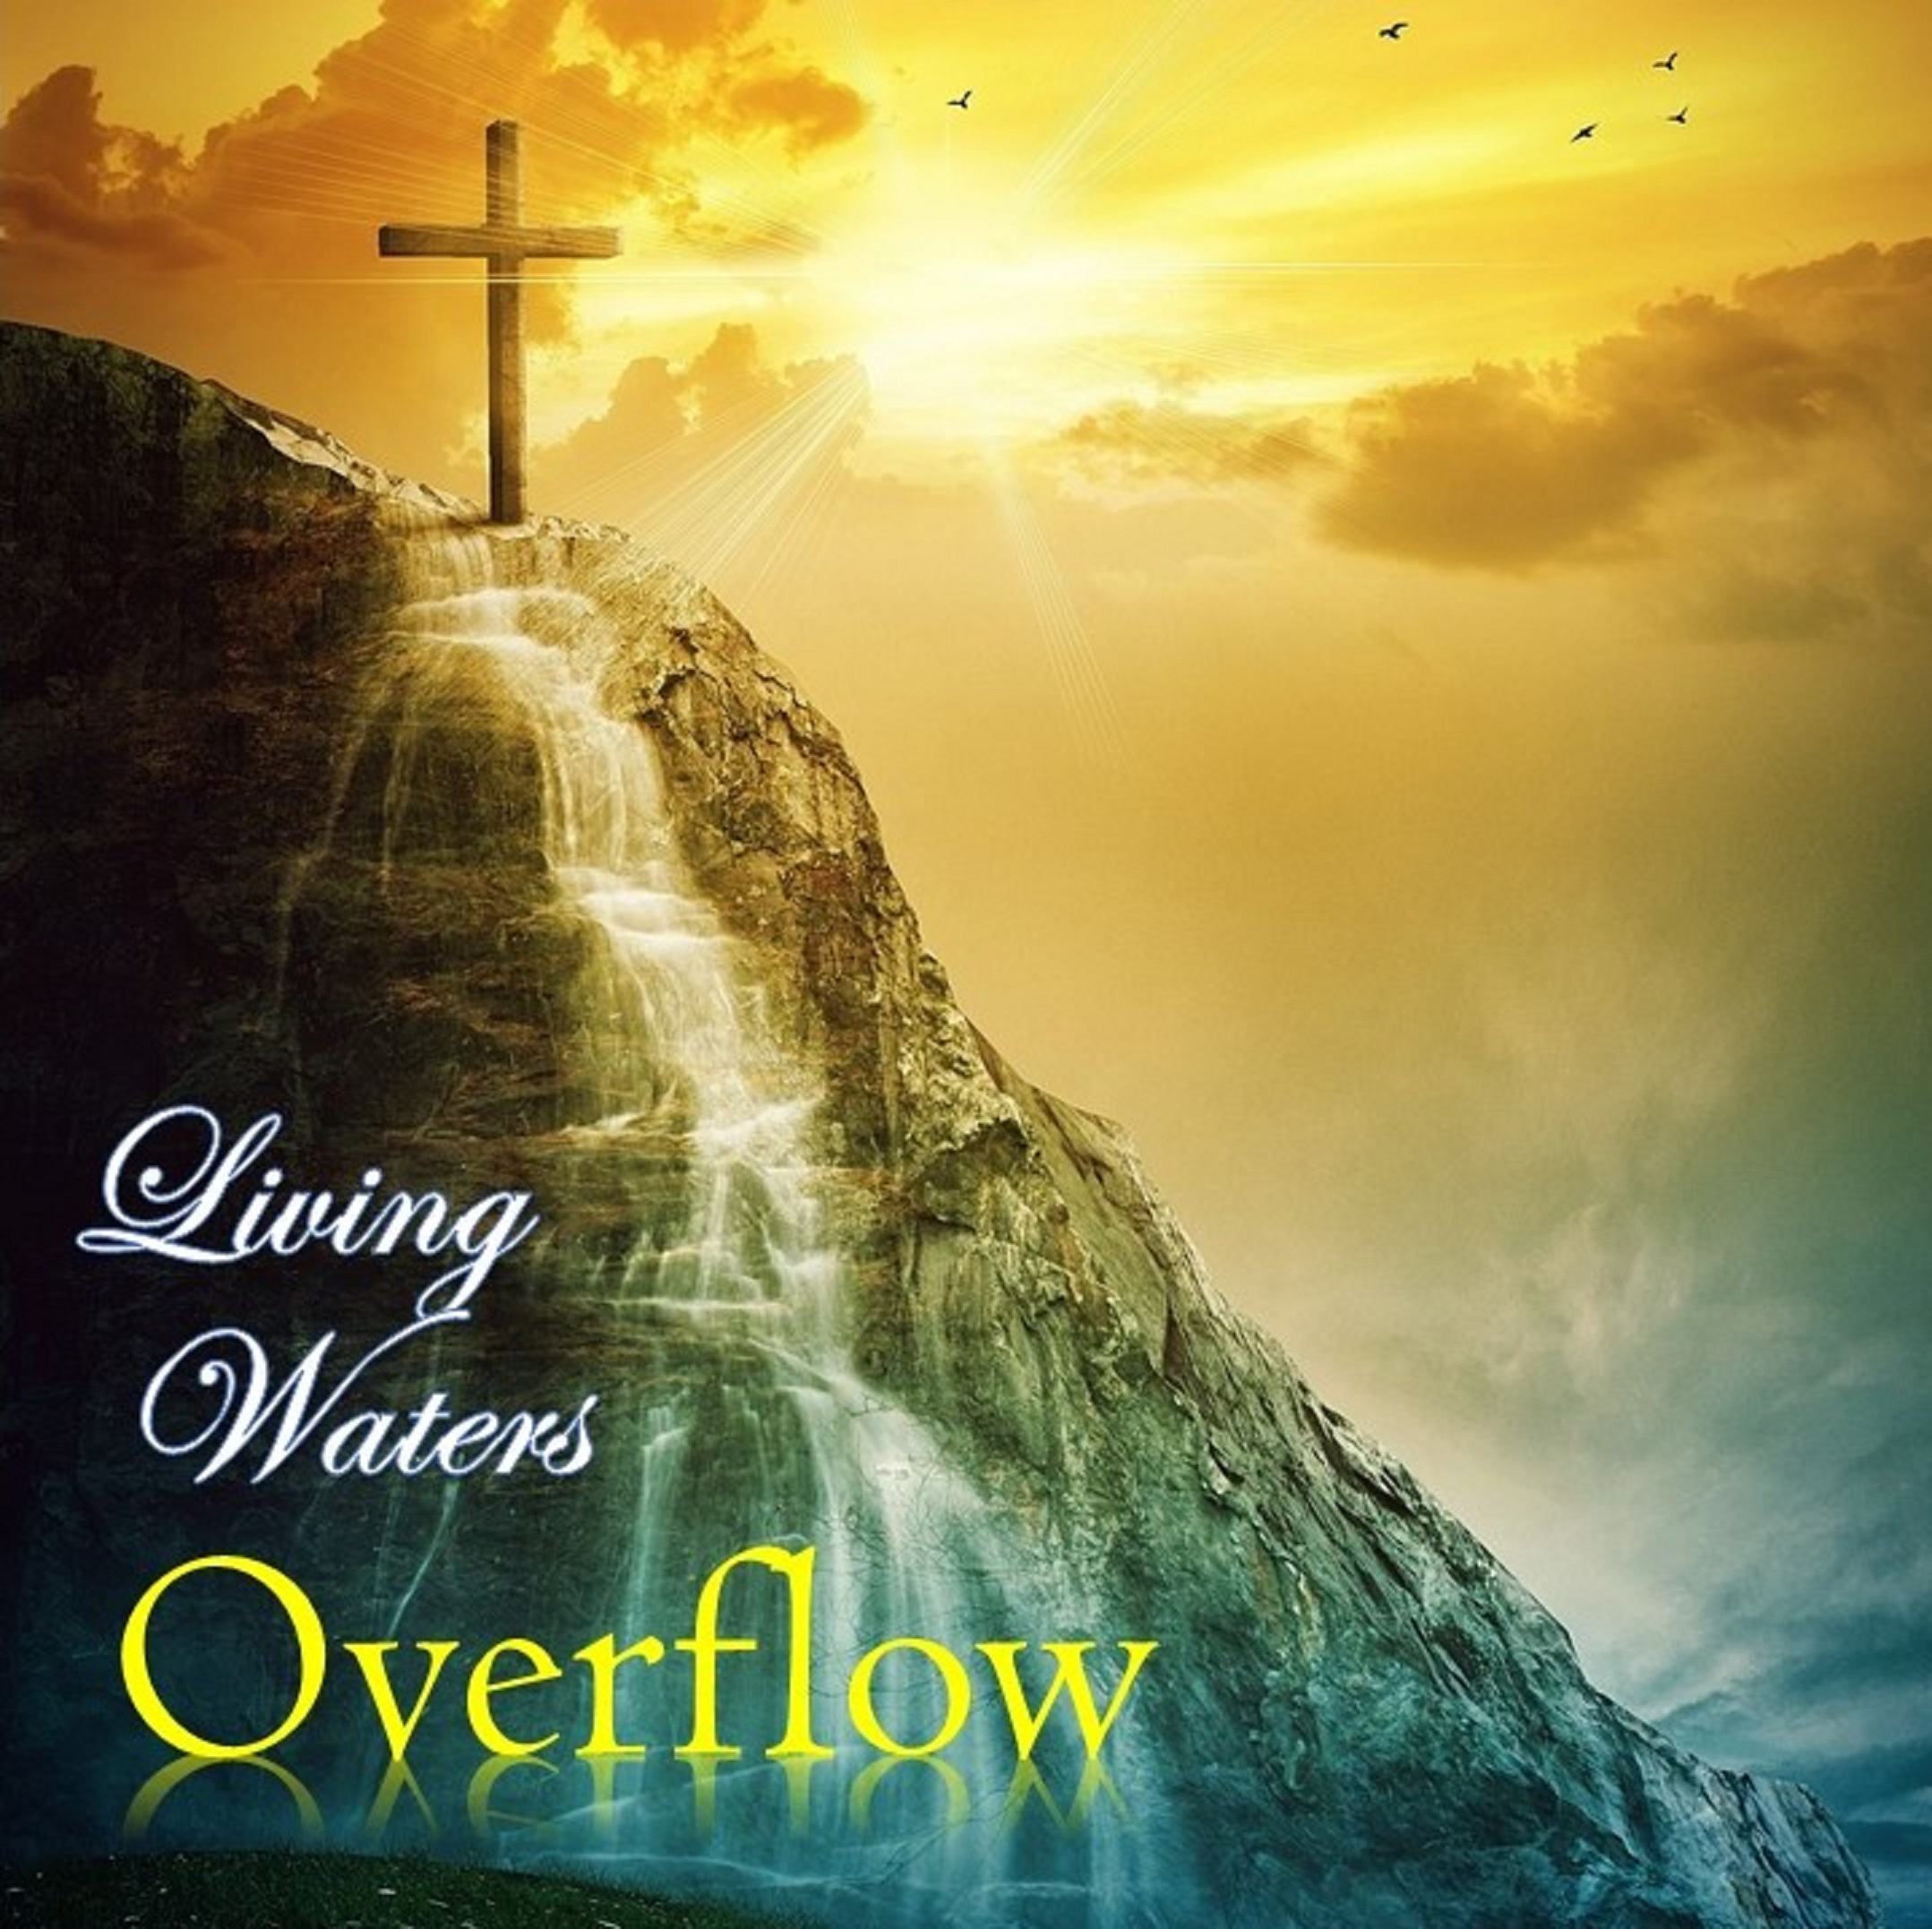 Living Waters Overflow Album Cover WHITE LW LARGE.jpg